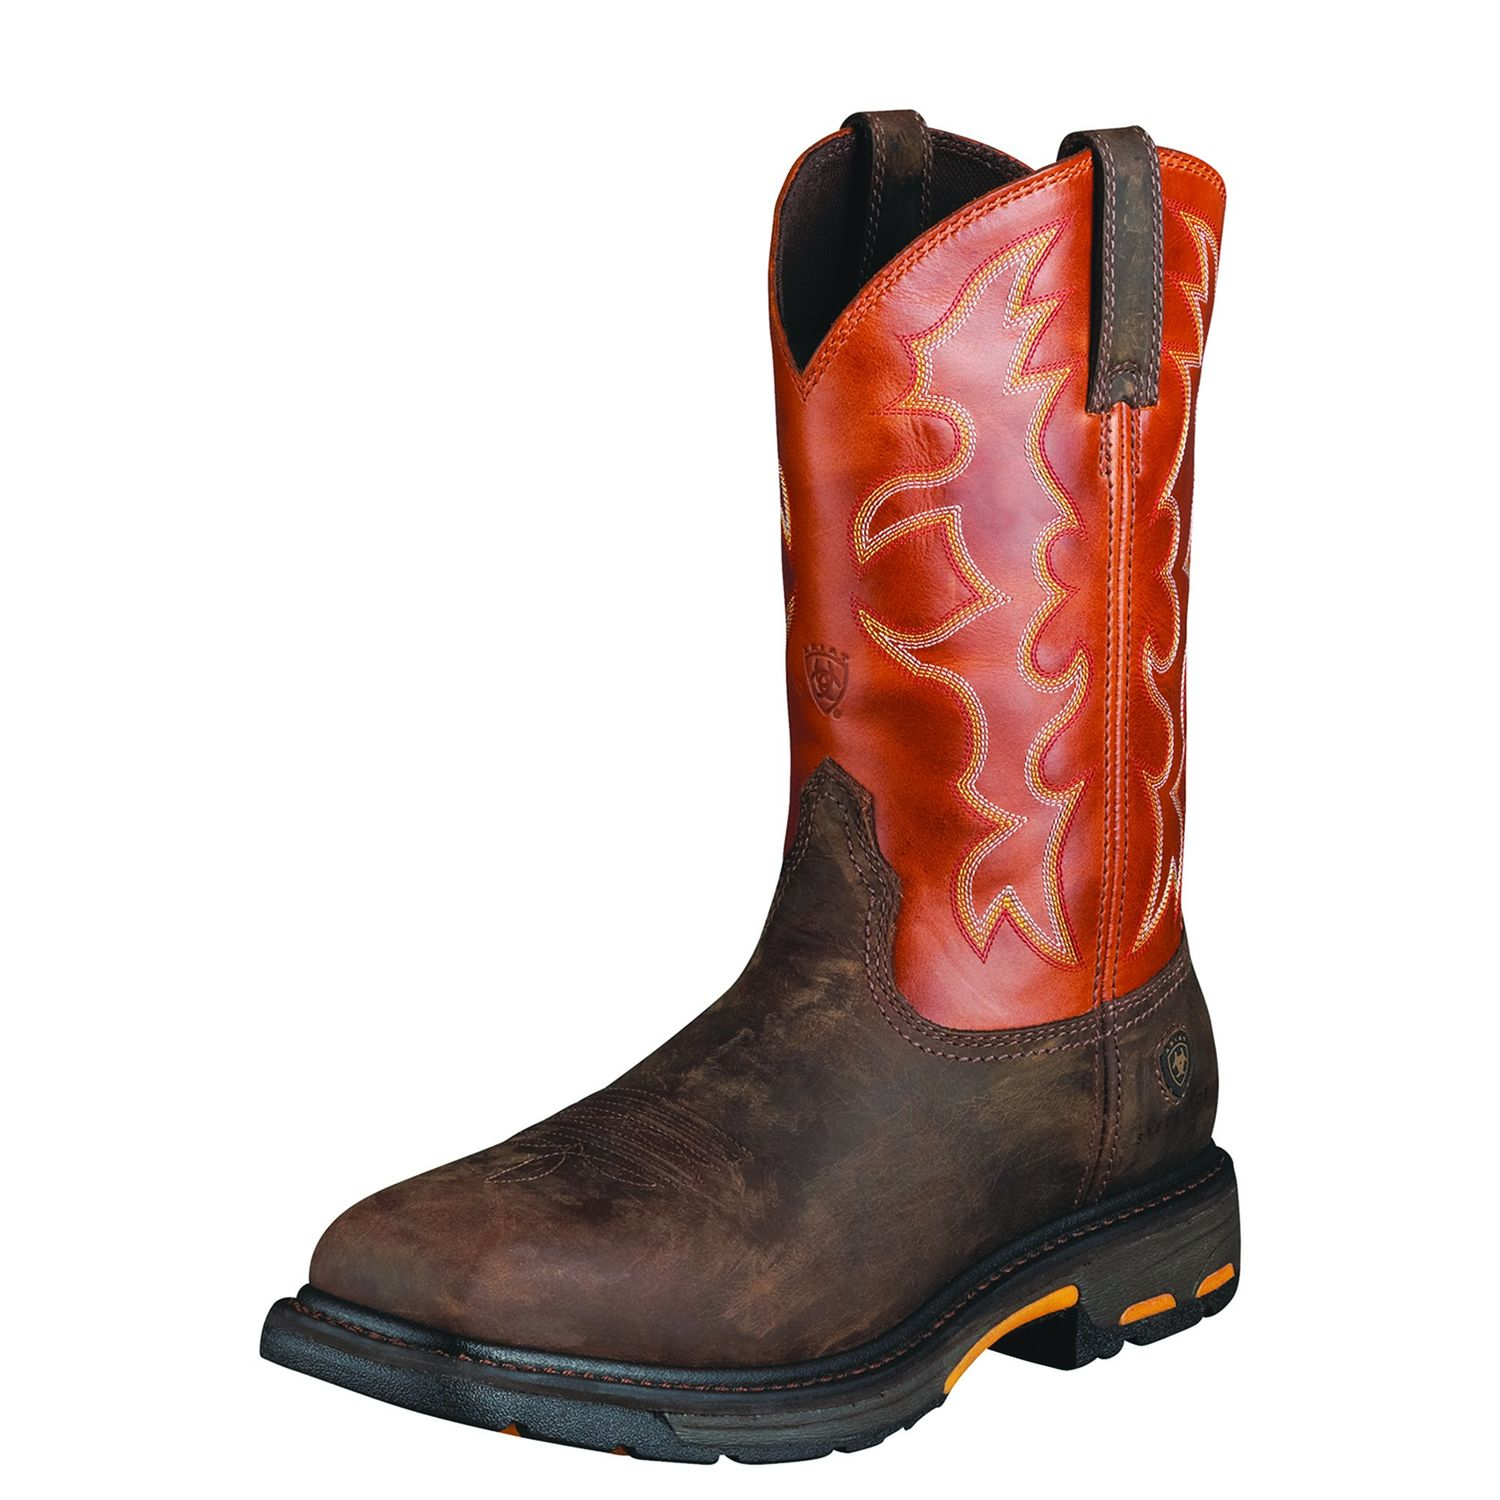 Ariat - Workhog Steel Toe-Ariat